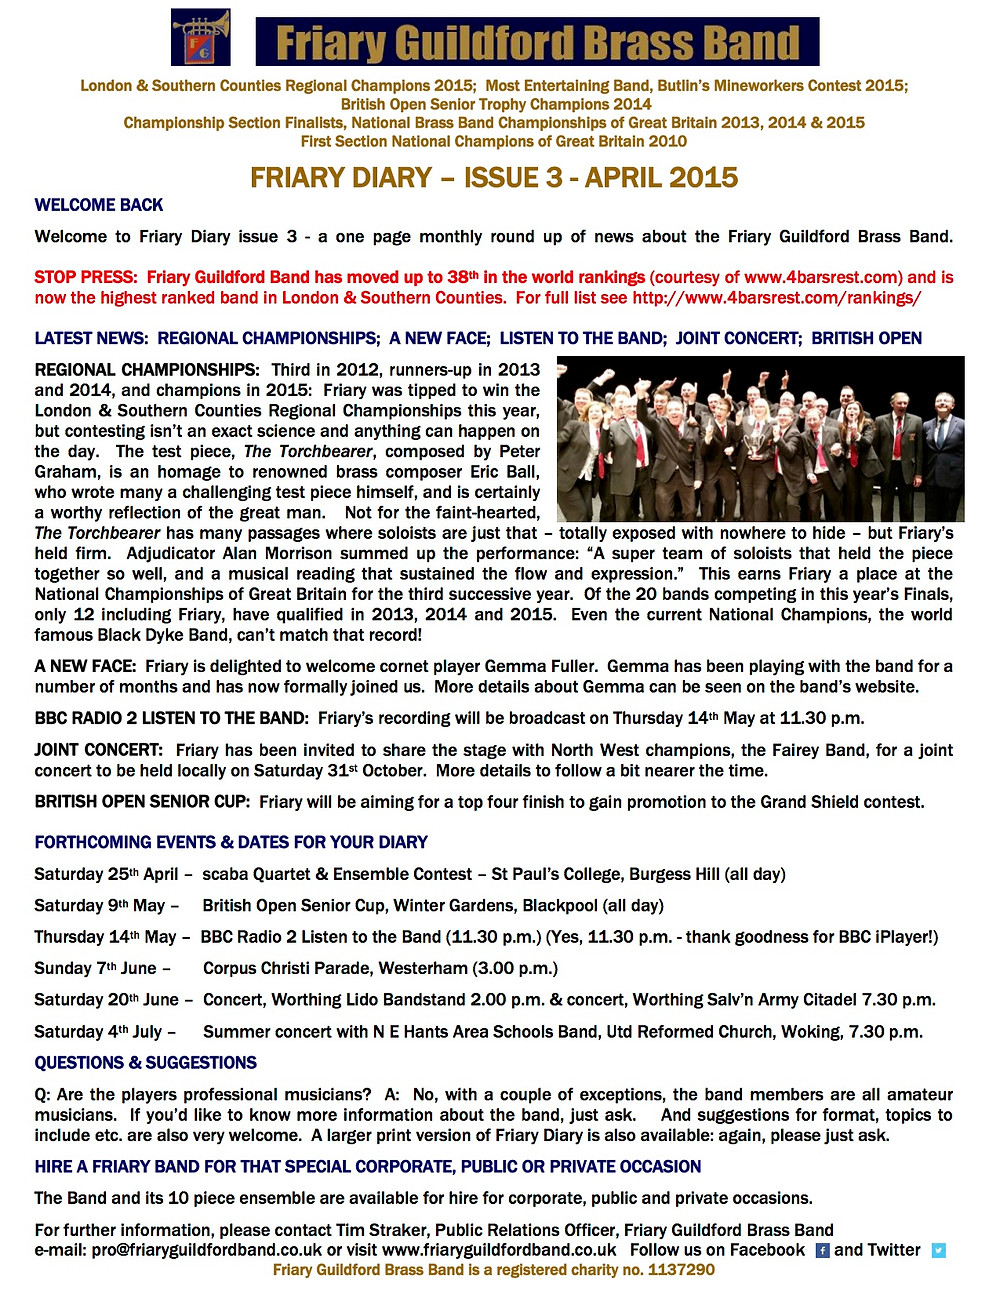 Friary Diary issue 3 April 2015.jpg